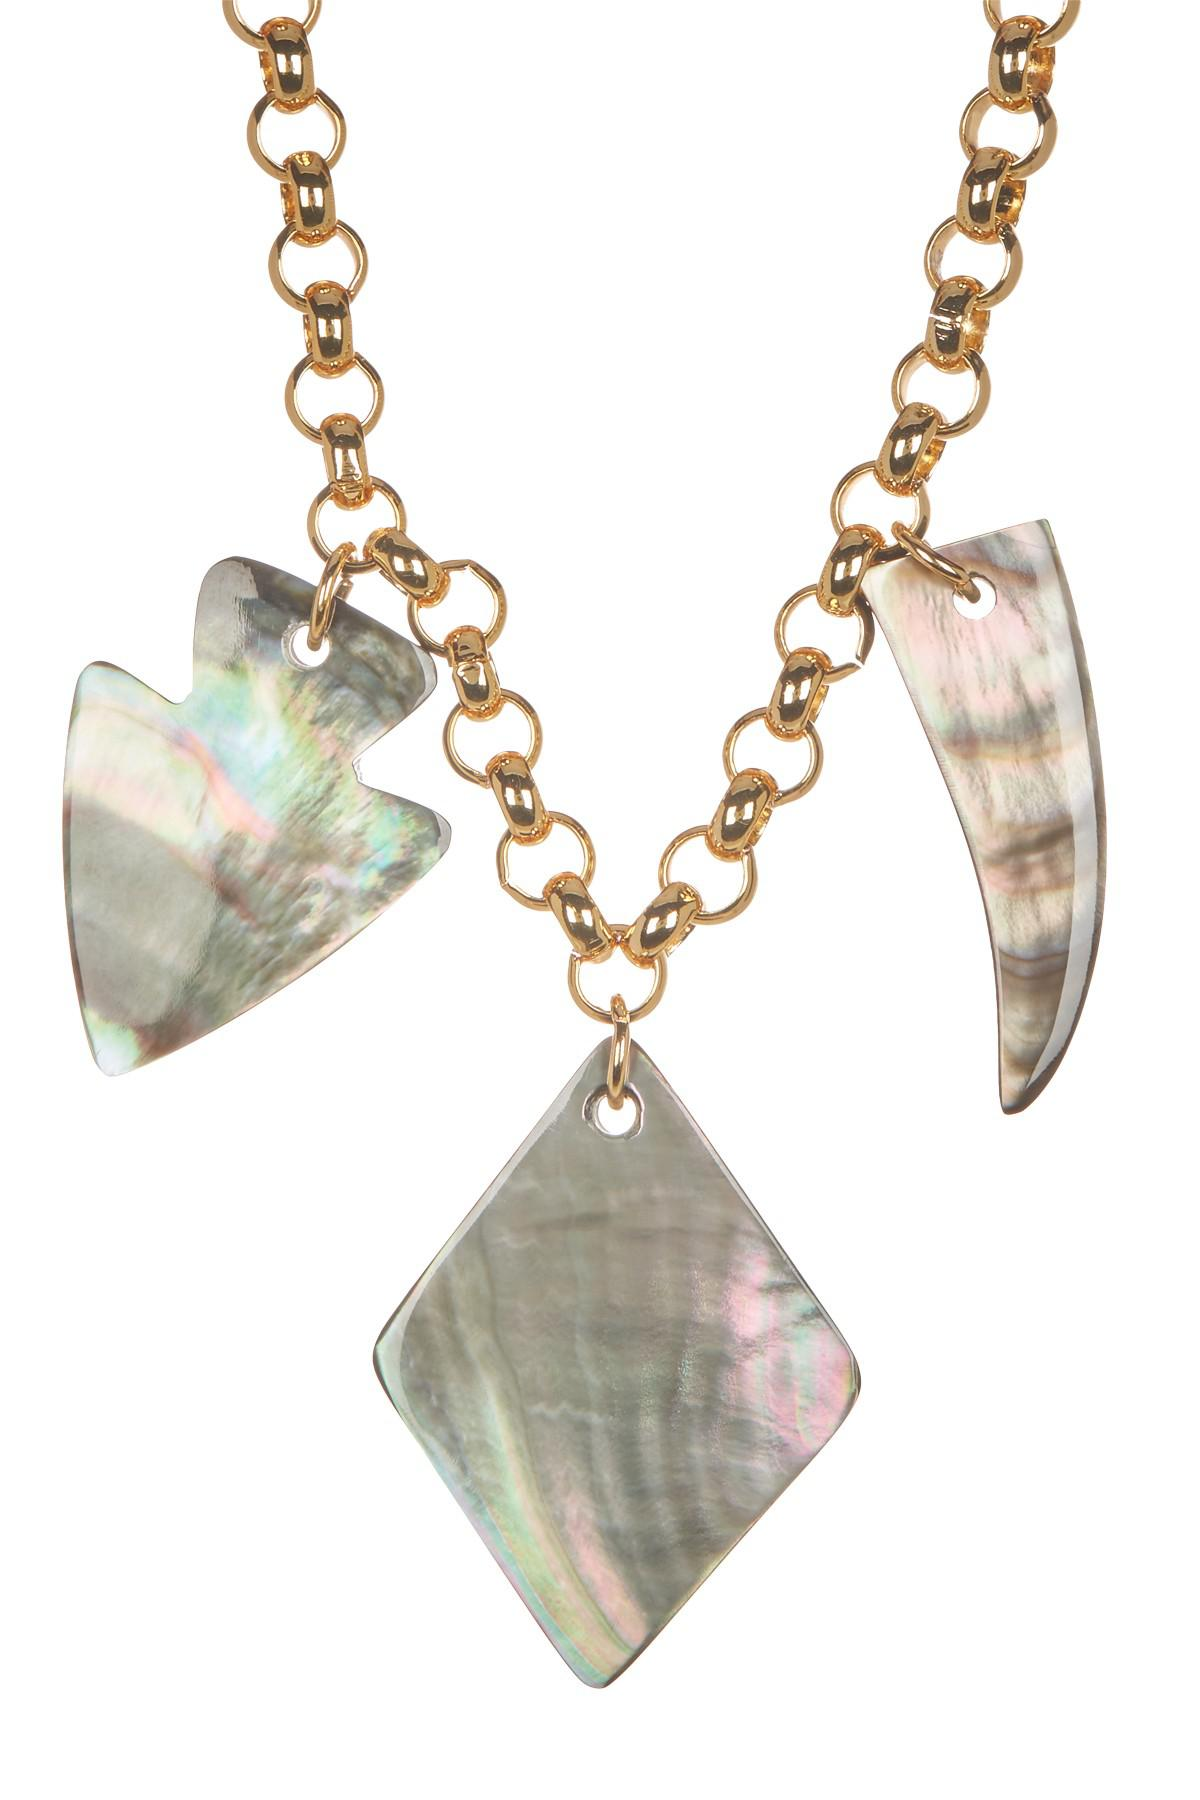 Nest Mother-of-Pearl Chain Charm Necklace y5mEDnmWU